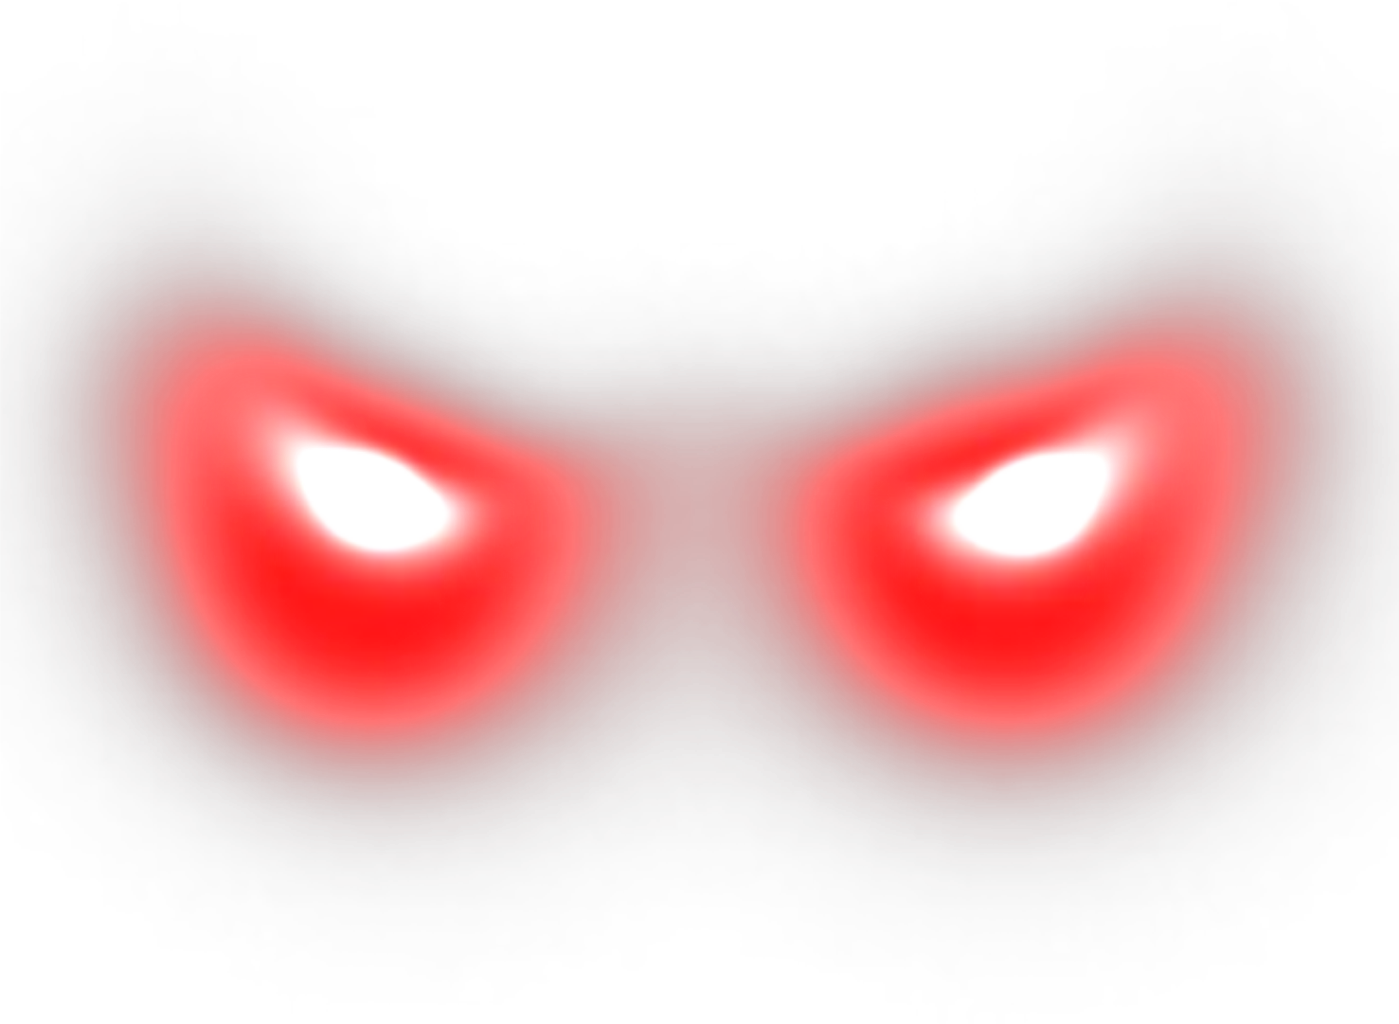 Glowing red eyes png. Art glowingeyes redeyes stickers